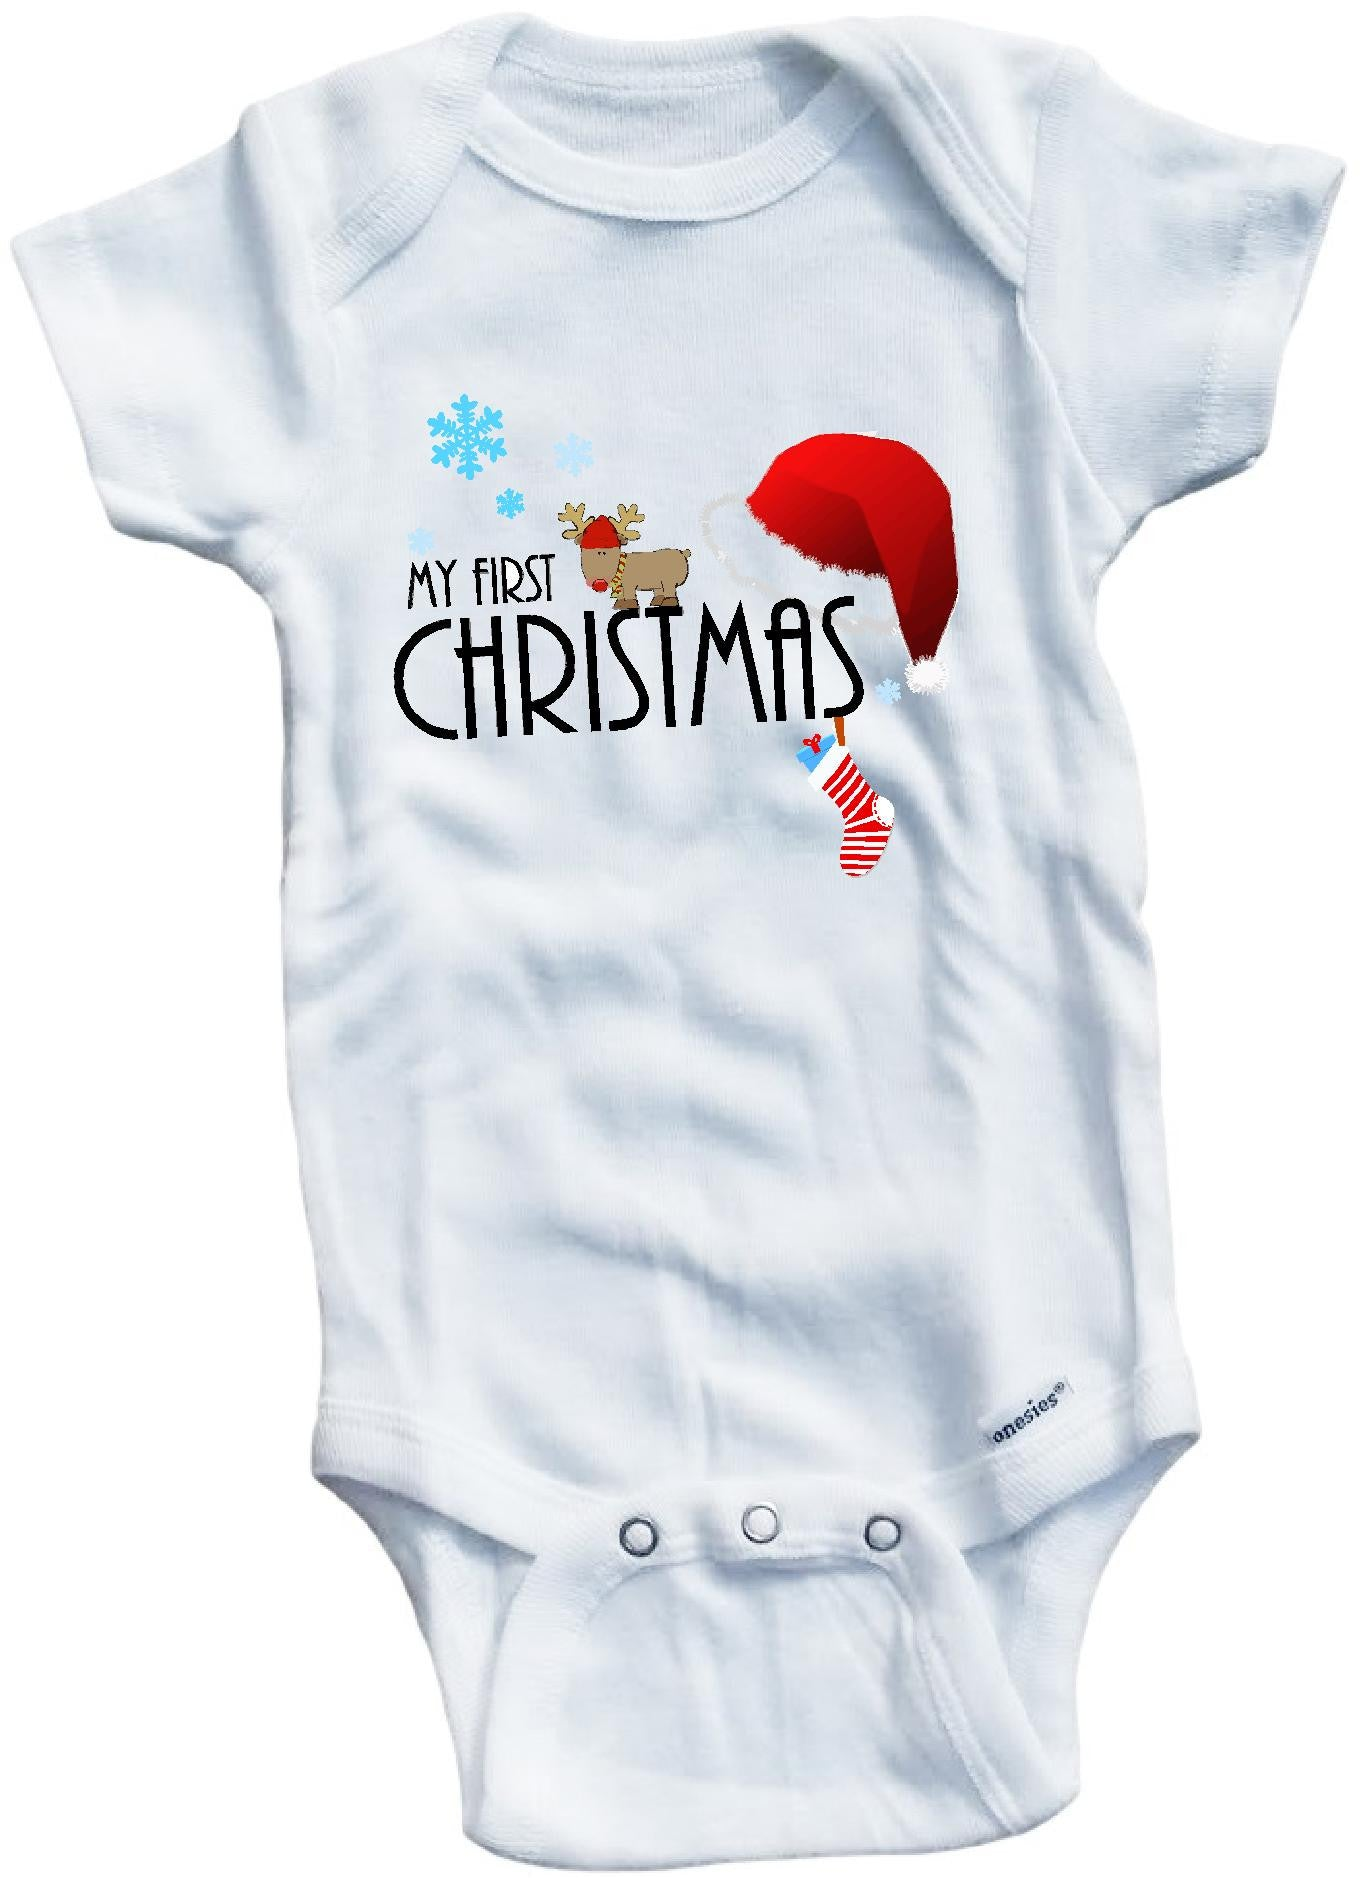 3d7c4490e My first Christmas cute infant clothing funny baby clothes bodysuit ...